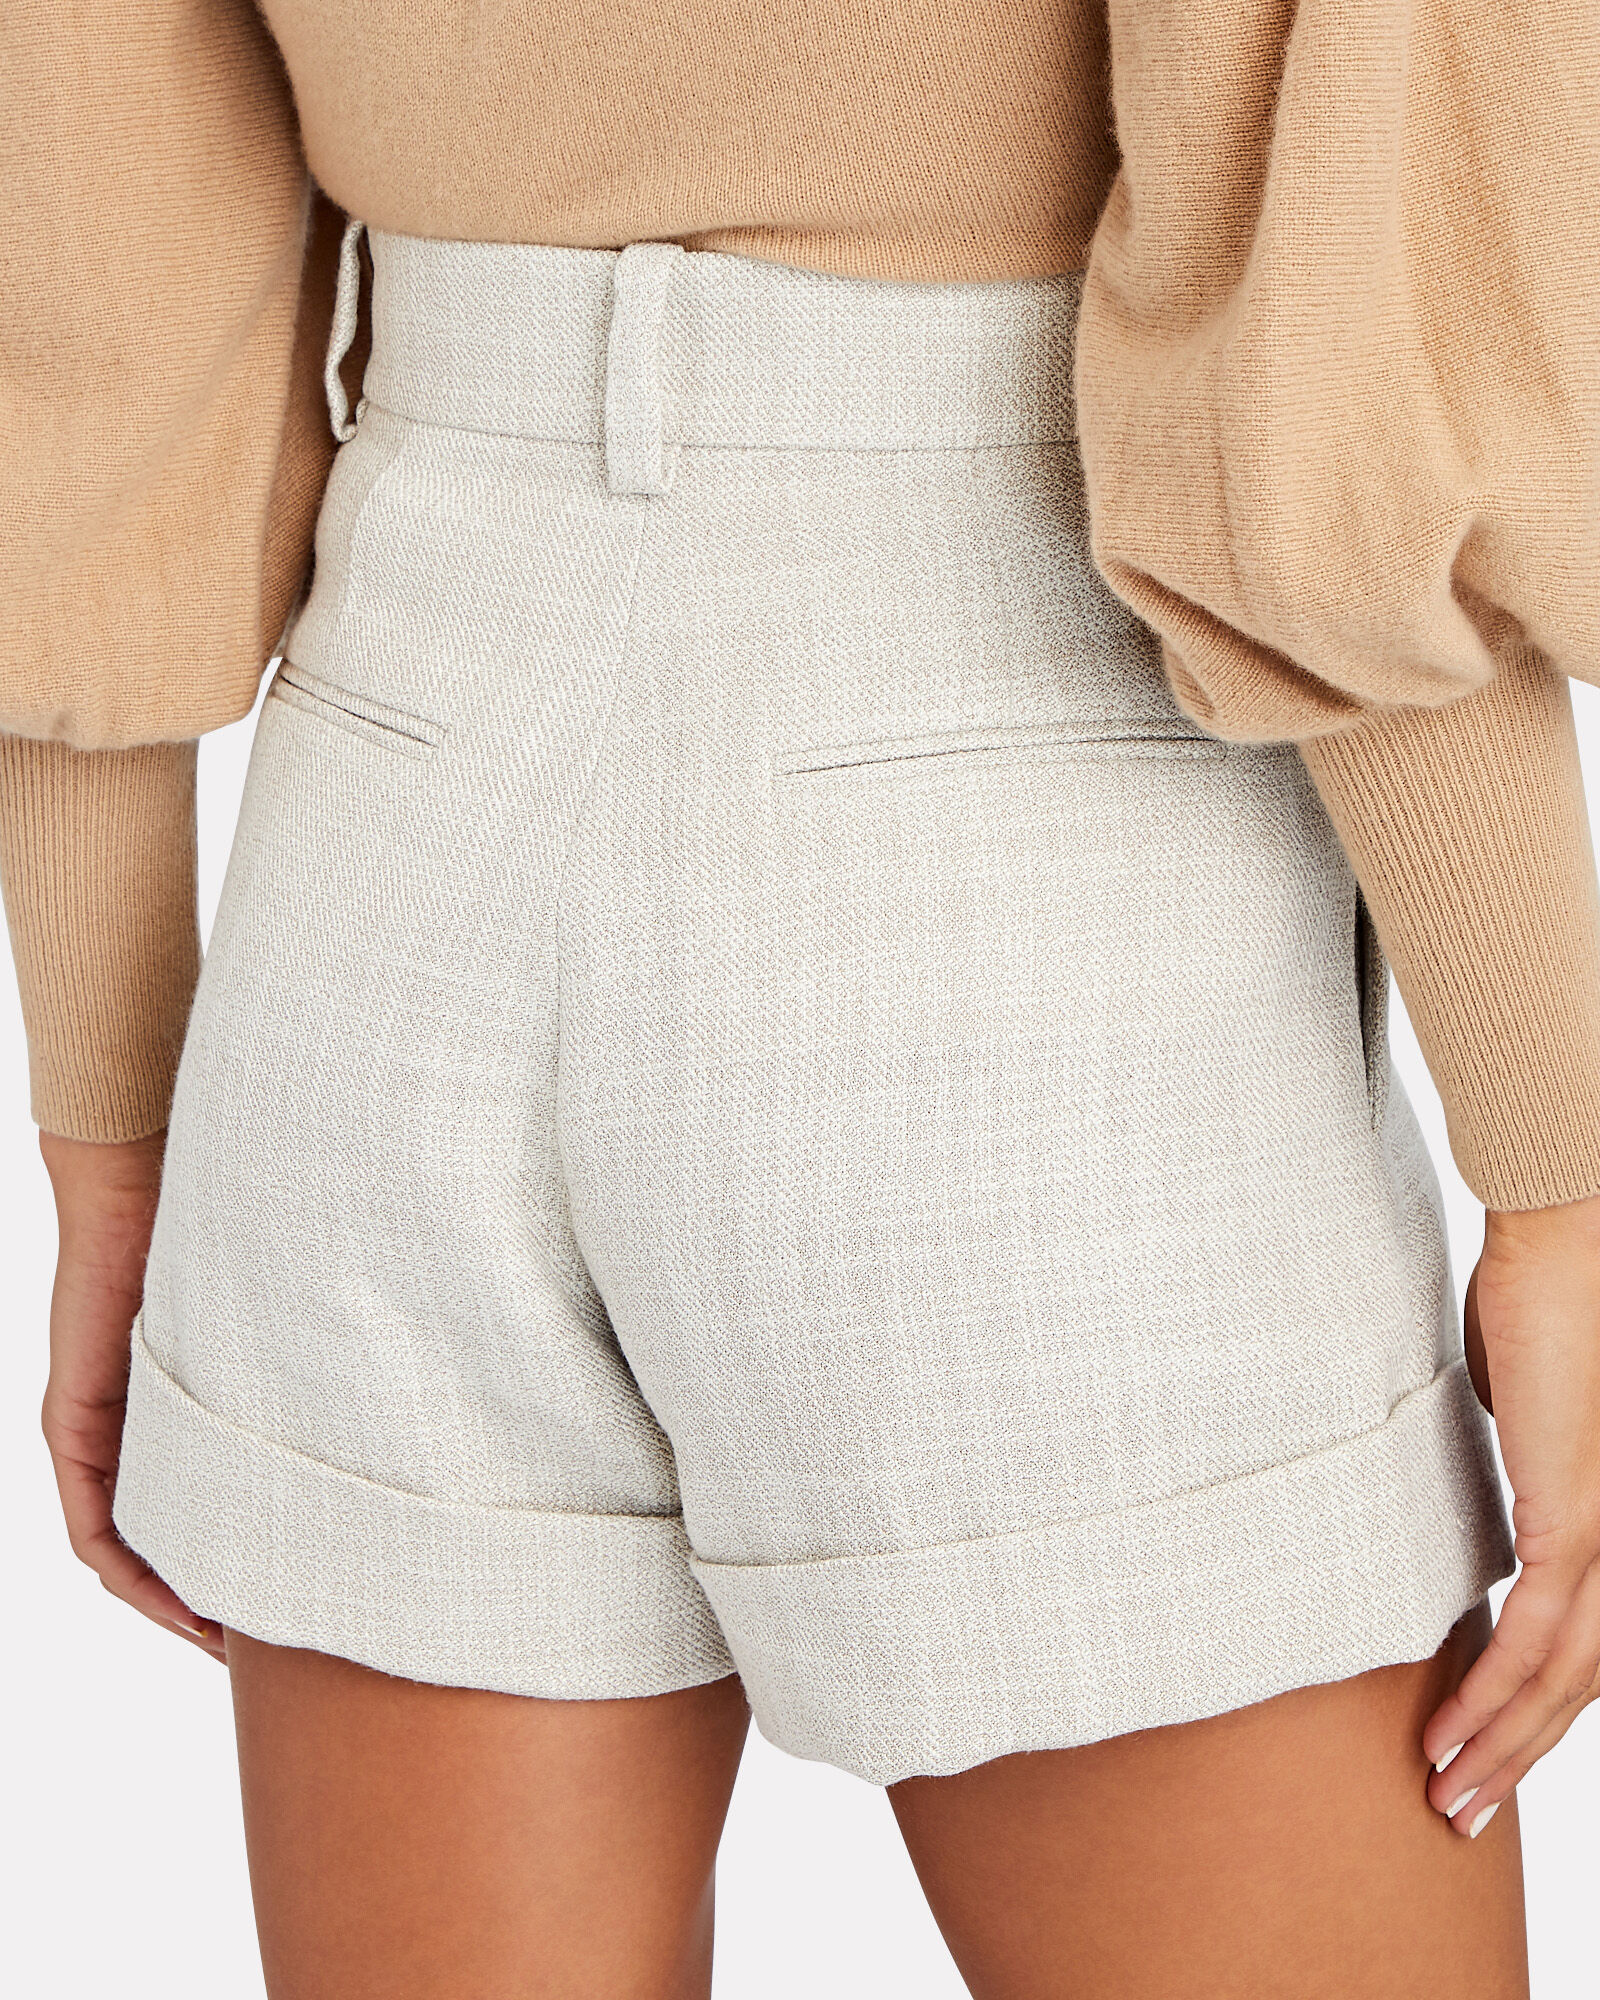 Kings Pleated High-Rise Shorts, LIGHT GREY, hi-res